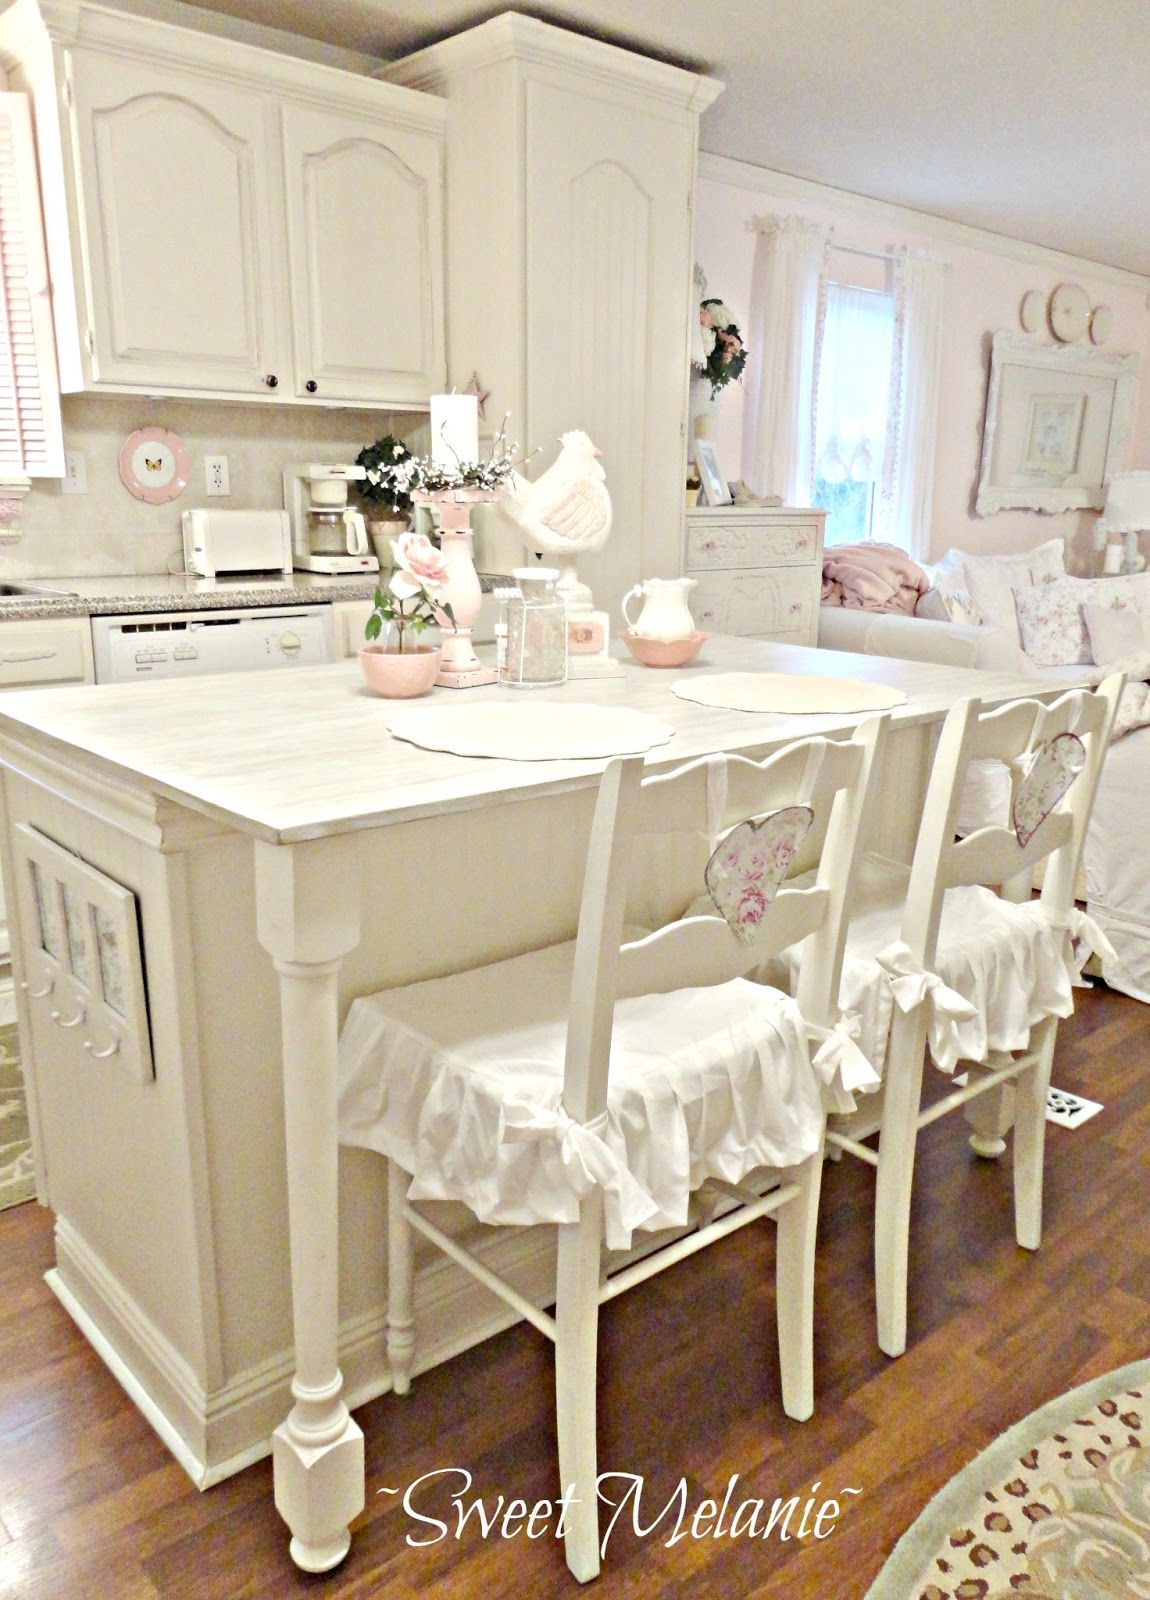 Kleiderschränke Shabby Chic How To Design A Shabby Chic Kitchen With A Subtle Modern Vibe